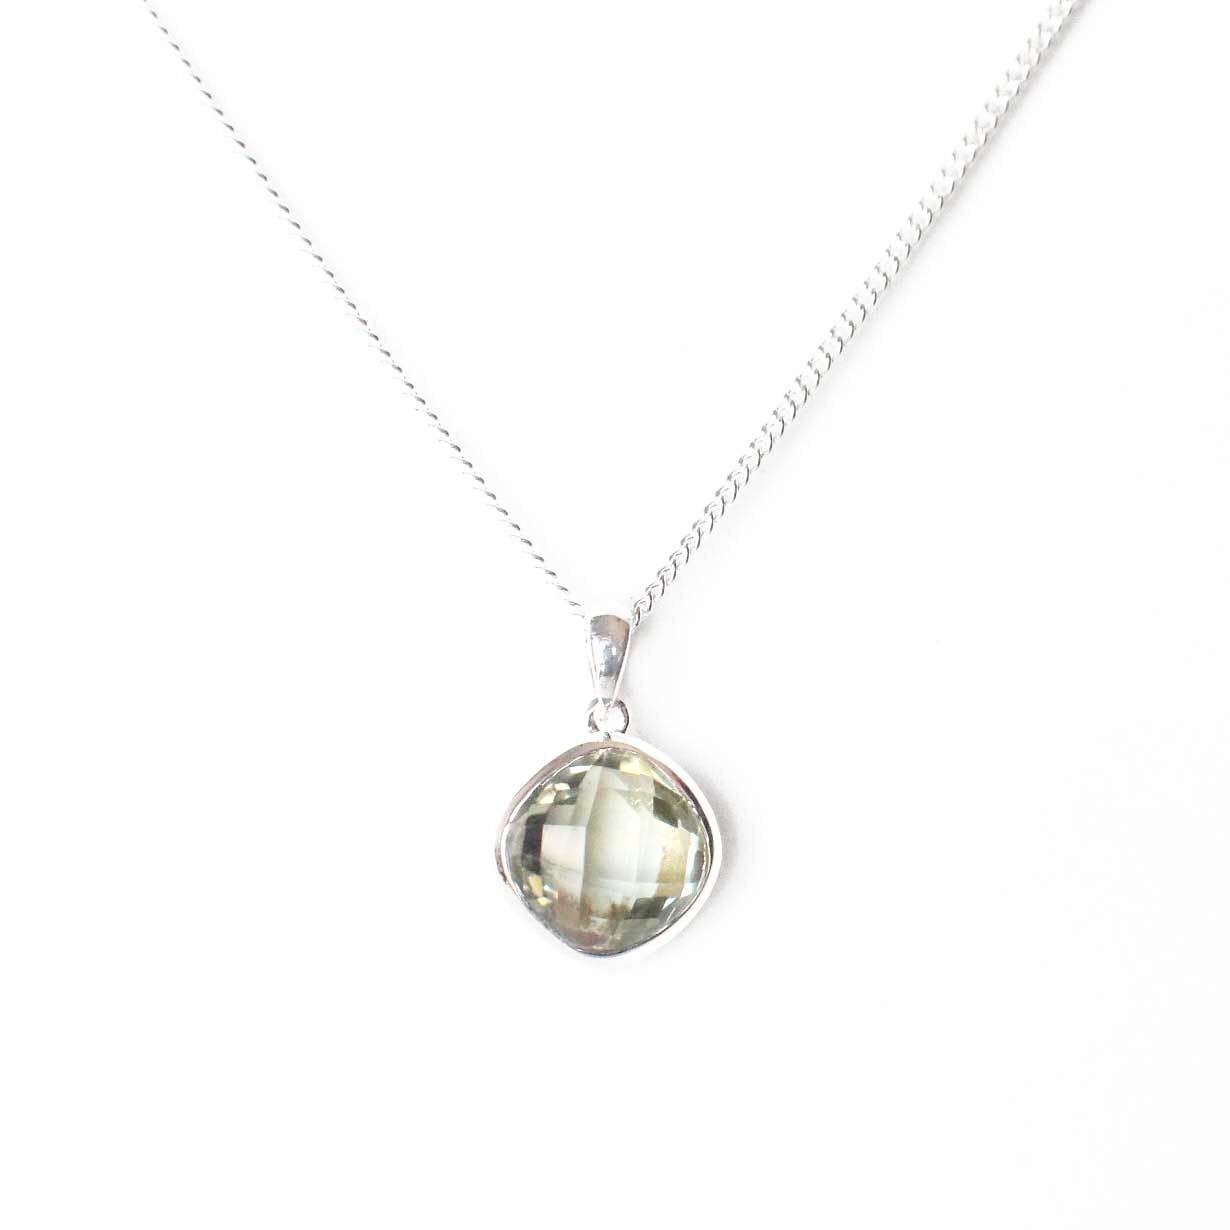 925 Silver Luxe Series - Liora Pendant (Green Amethyst)